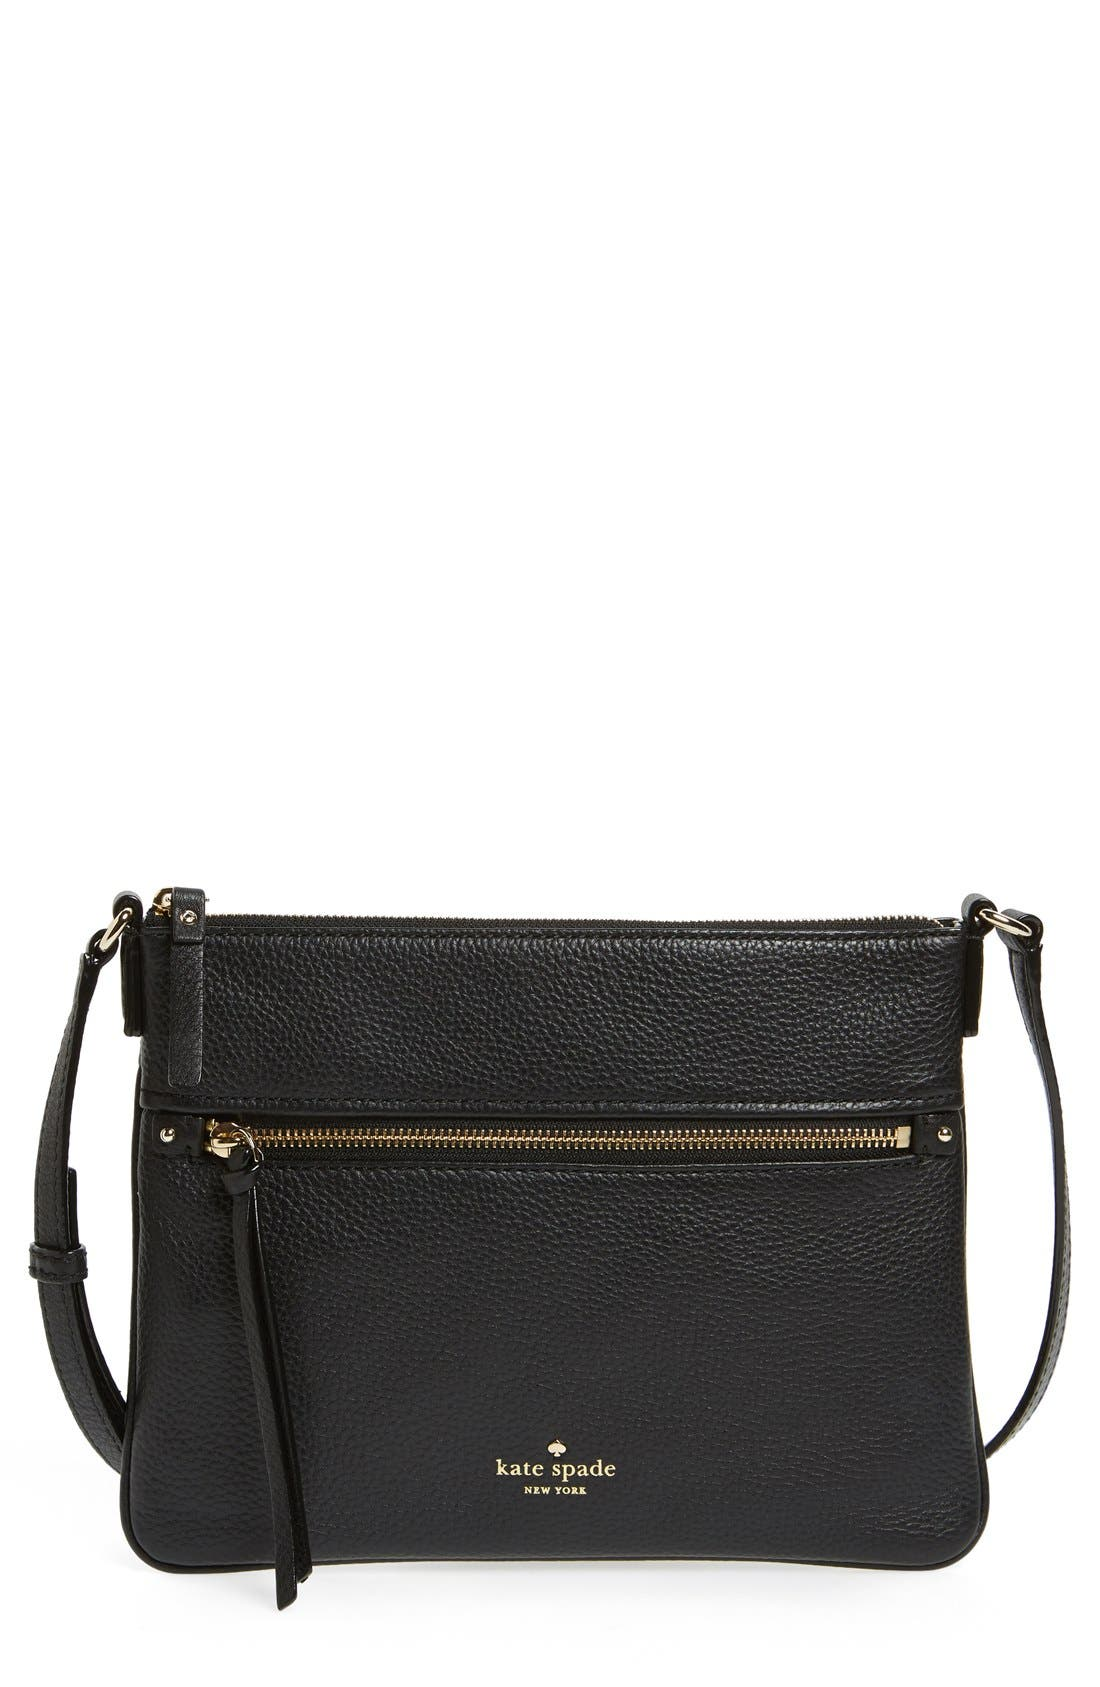 Main Image - kate spade new york 'cobble hill - gabriele' pebbled leather crossbody bag